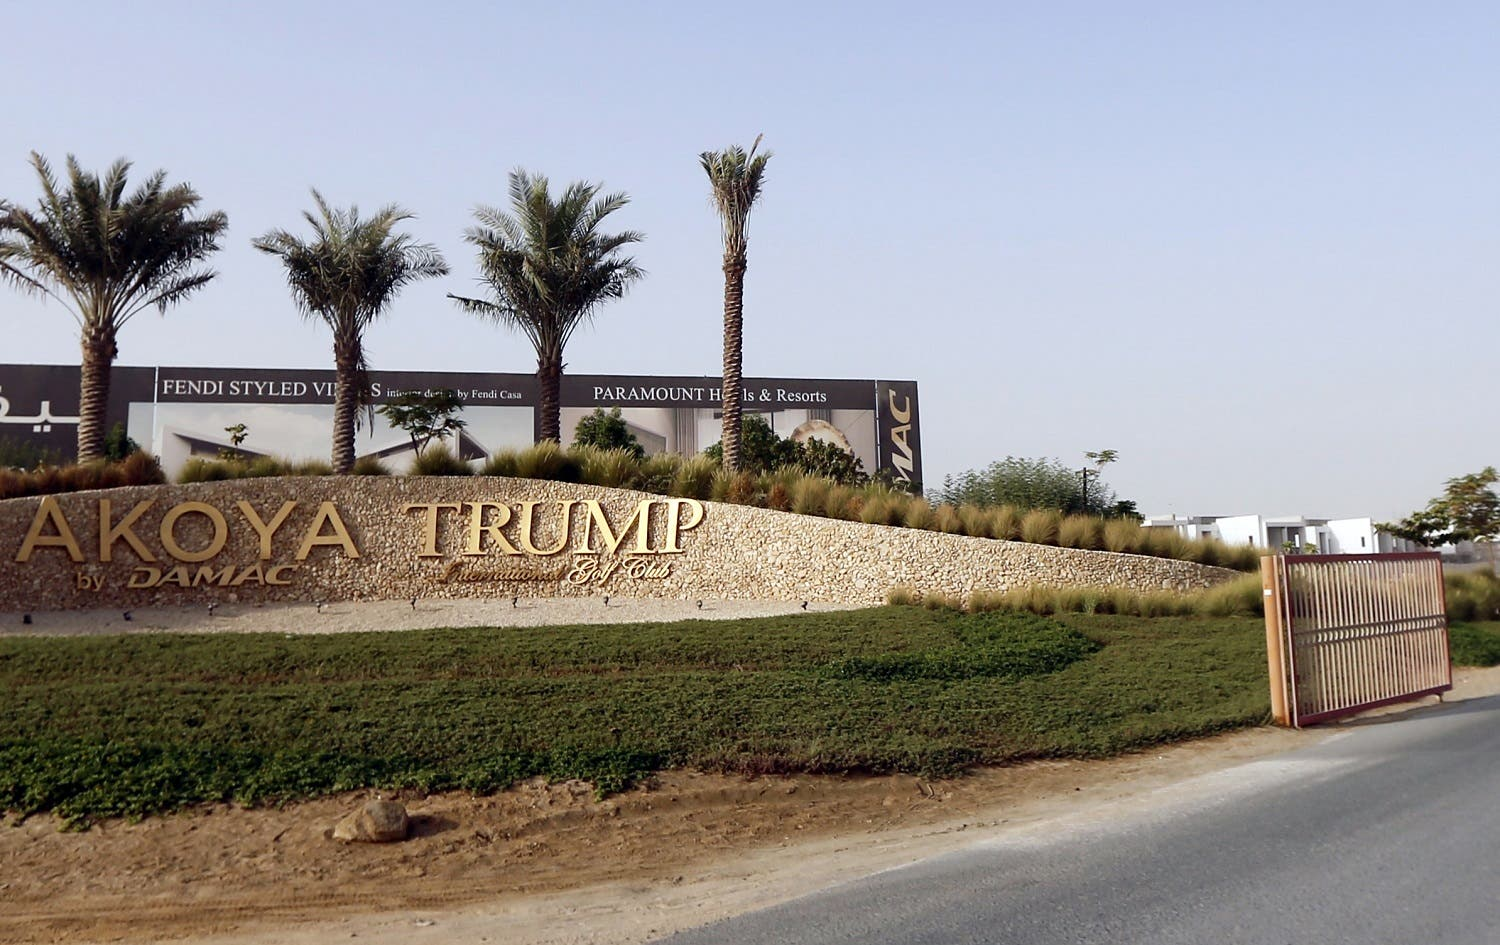 A general view shows a gated entrance to the AKOYA by DAMAC master luxury community where Donald Trump International Golf Club Dubai are located in the UAE on August 12, 2015. AFP)